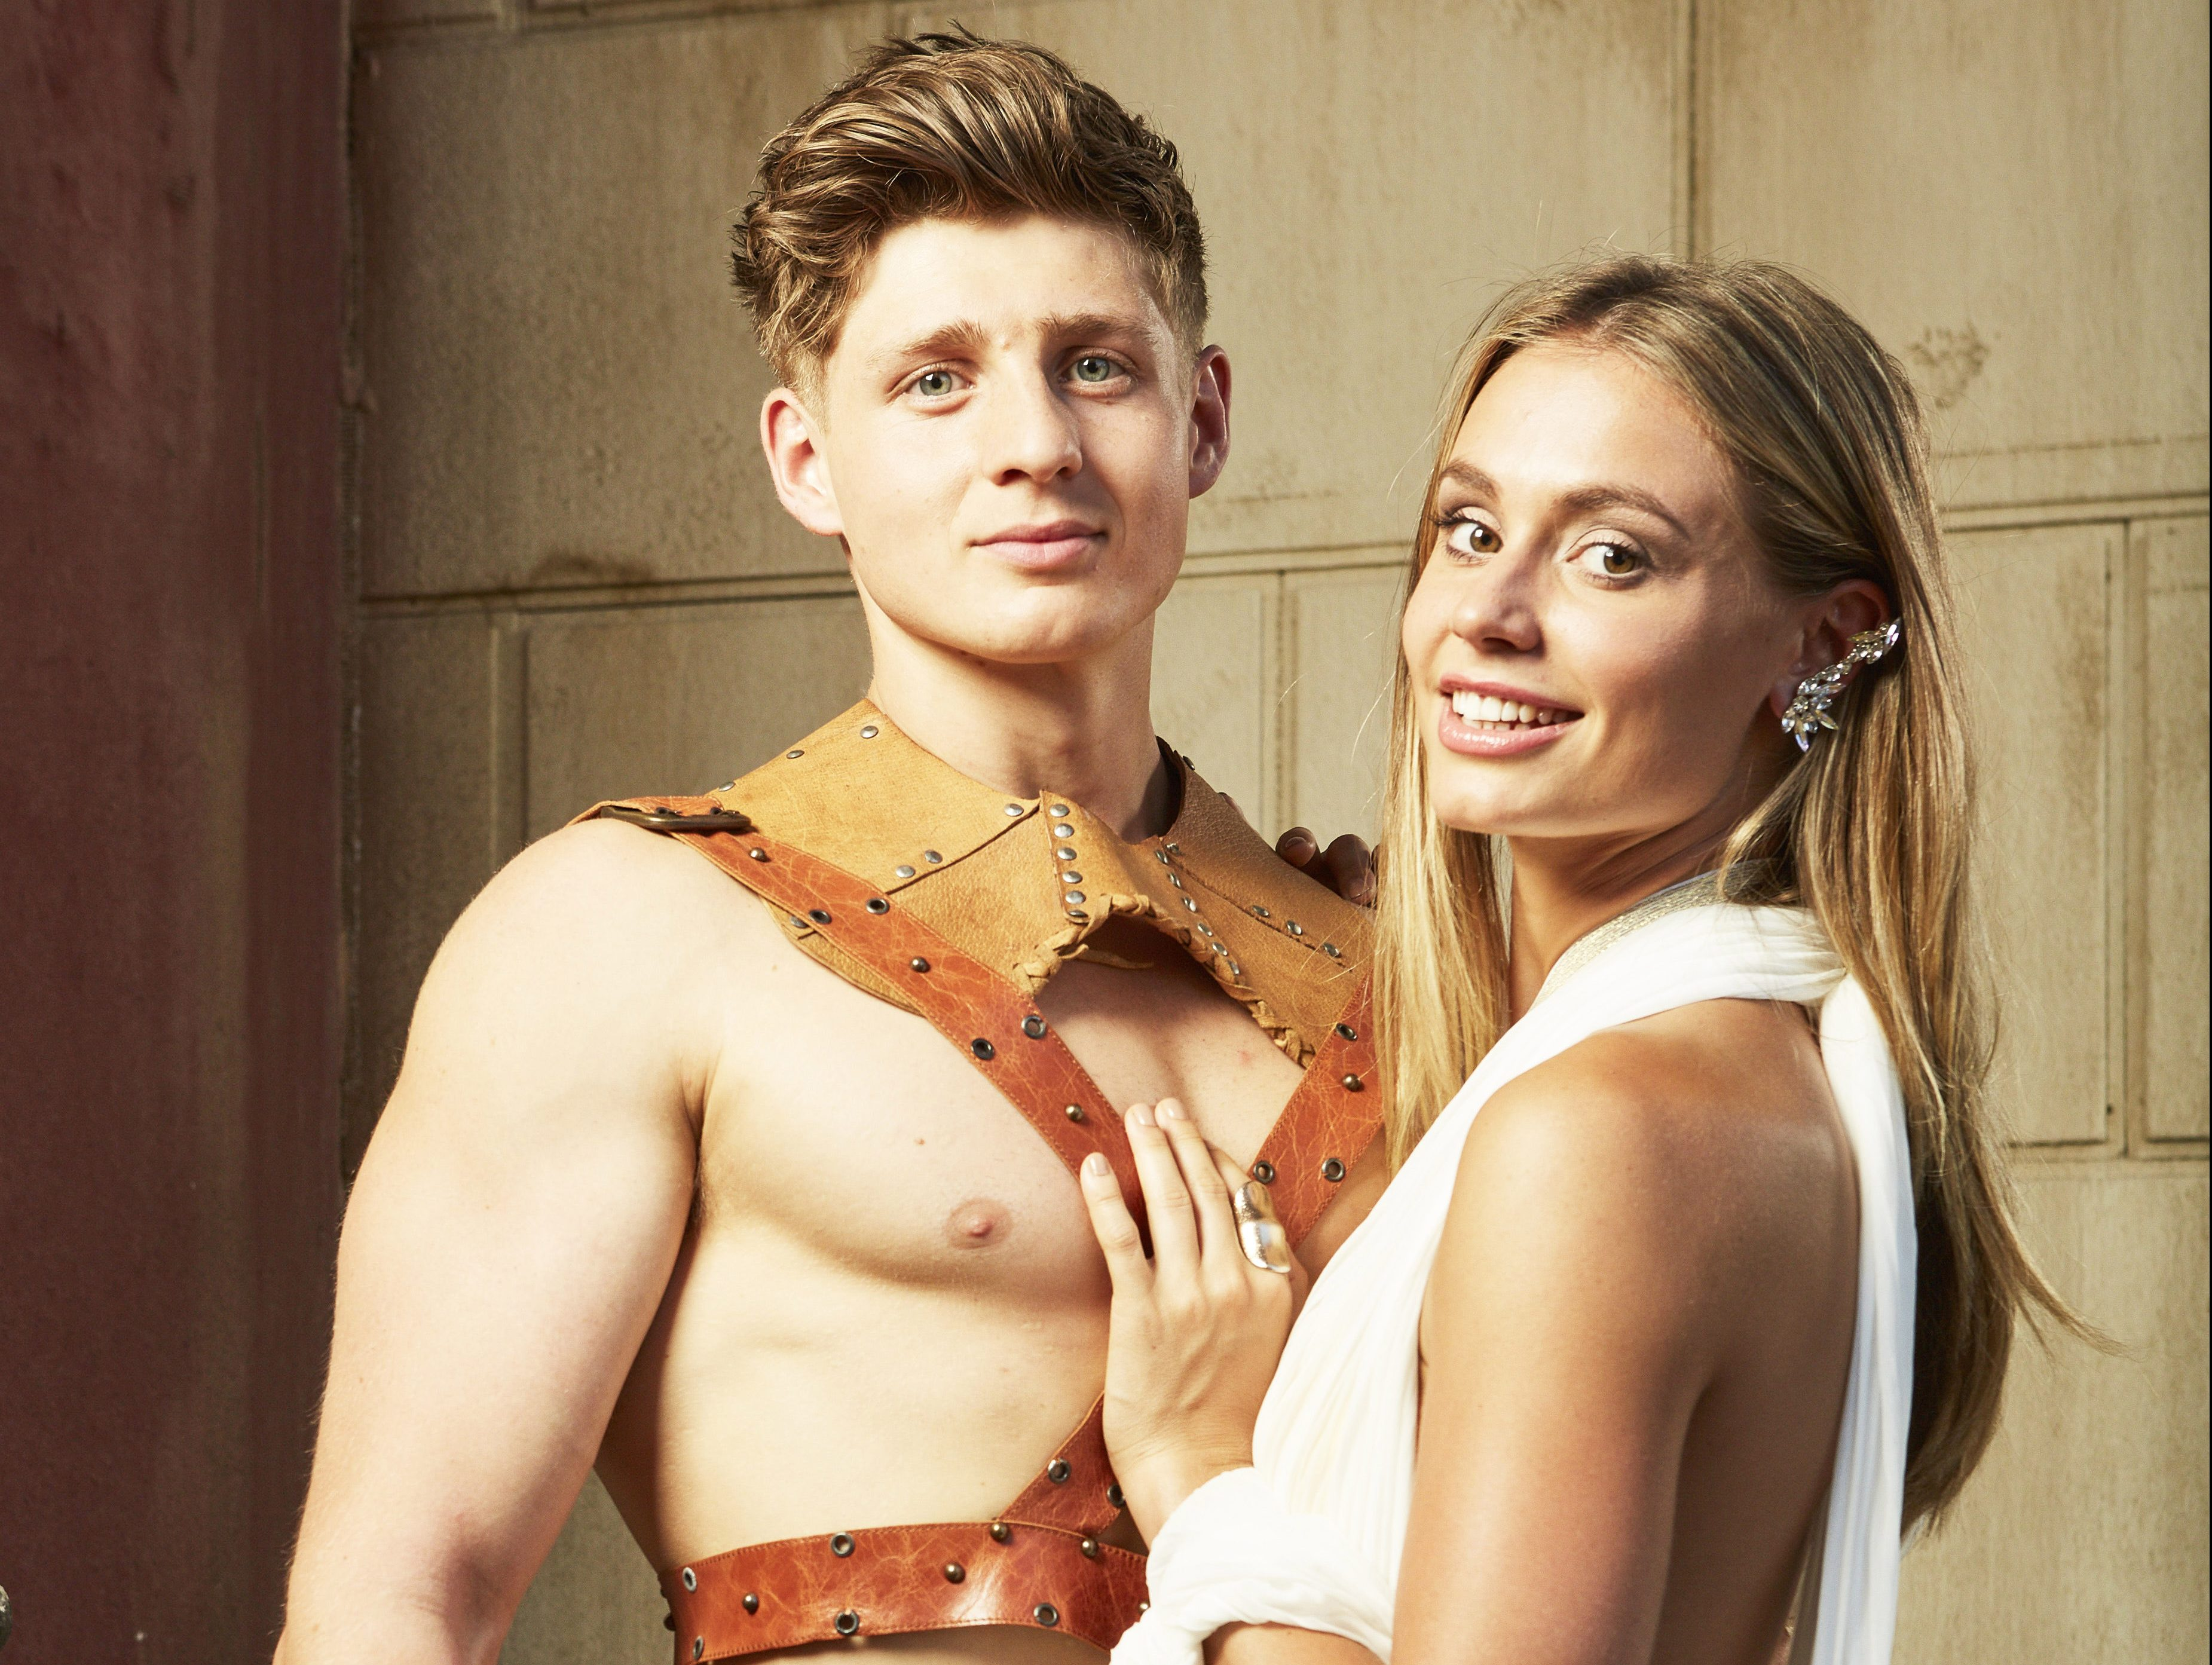 Meet the Bromans couples: Tom and Rhiannon are a pretty physical pair